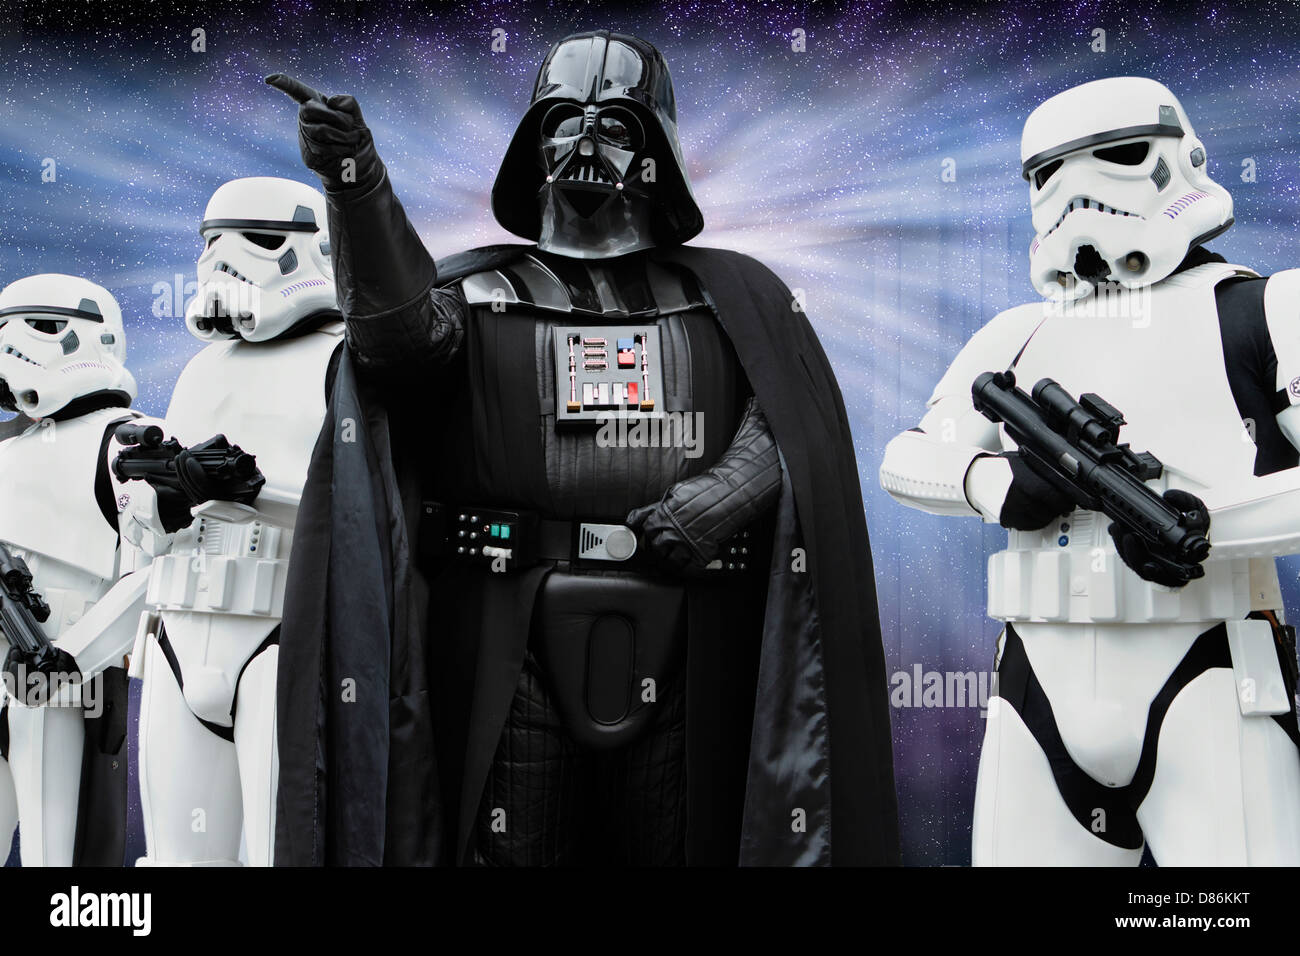 Star Wars Darth Vader And Imperial Stormtrooper Characters